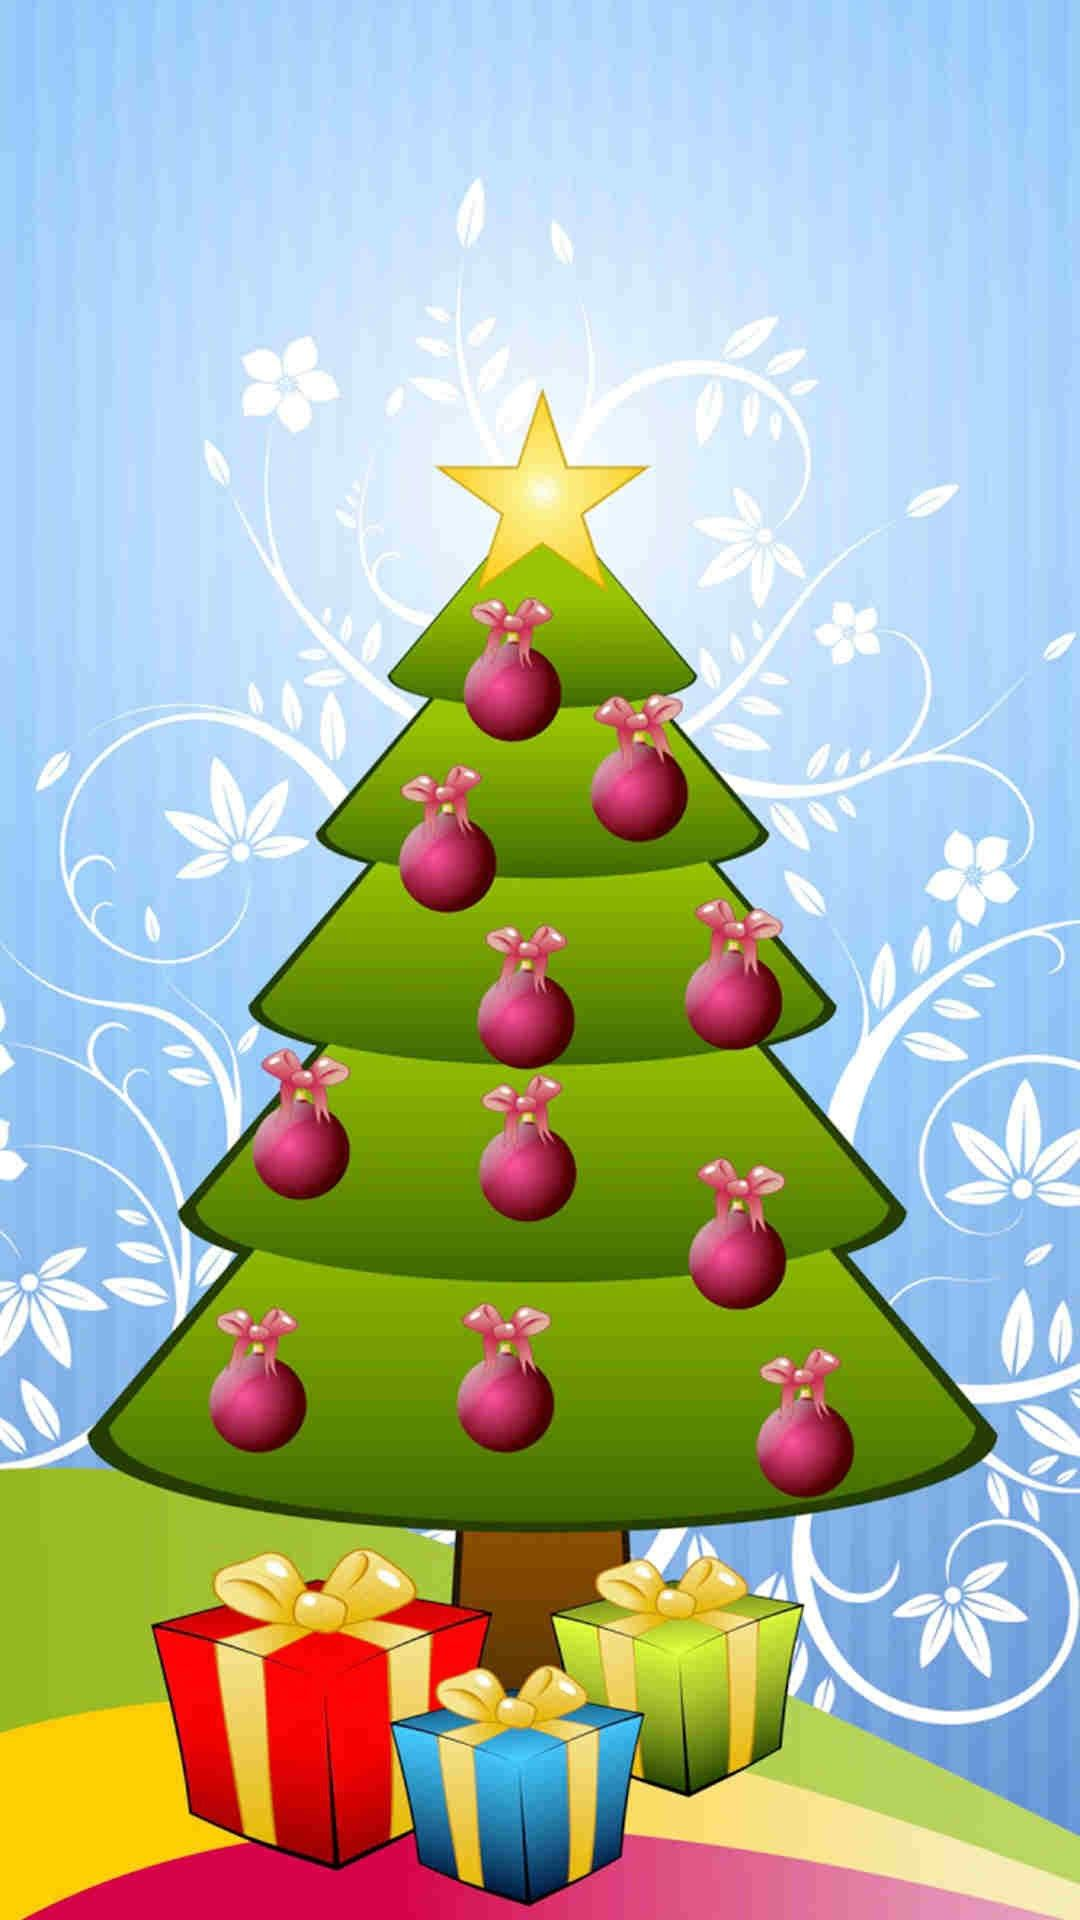 2015 Winter Most Stylish Christmas Tree Iphone 6 Plus Wallpaper Fashion Blog Christmas Tree Wallpaper Christmas Lockscreen Cute Christmas Tree